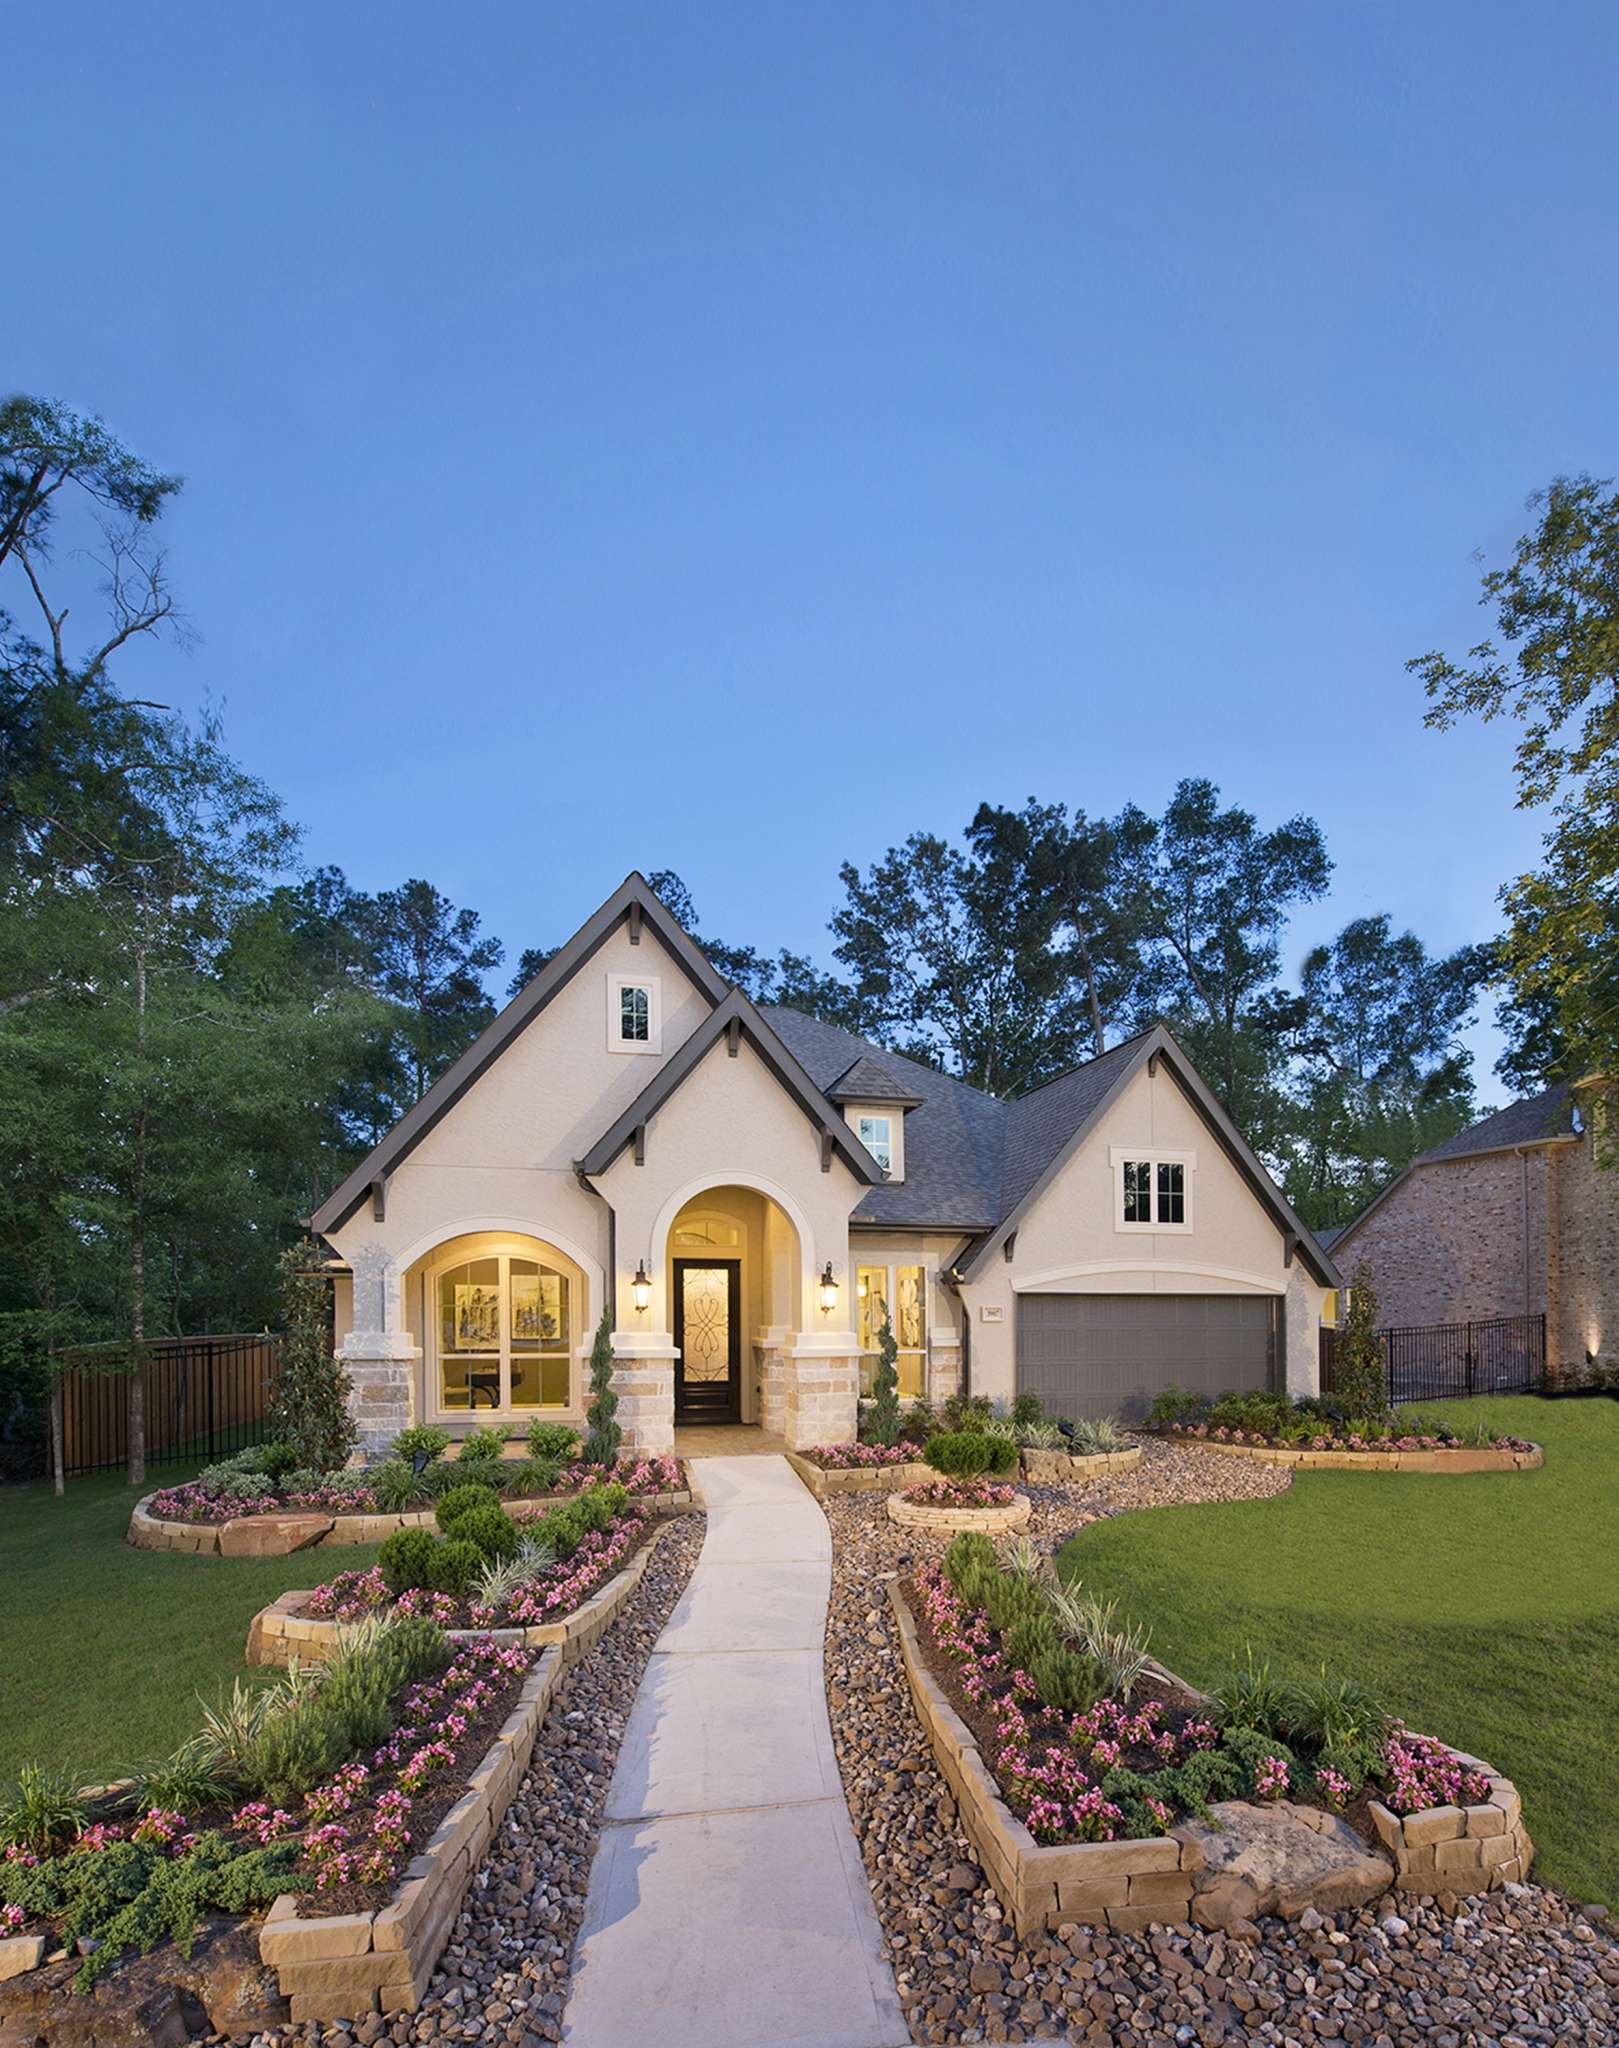 Captivating Groves Community Adds Two Homebuilders Houstonchronicle Groves Community Adds Two Homebuilders Houston Perry Homes Houston Communities Perry Homes Houston East End houzz-03 Perry Homes Houston